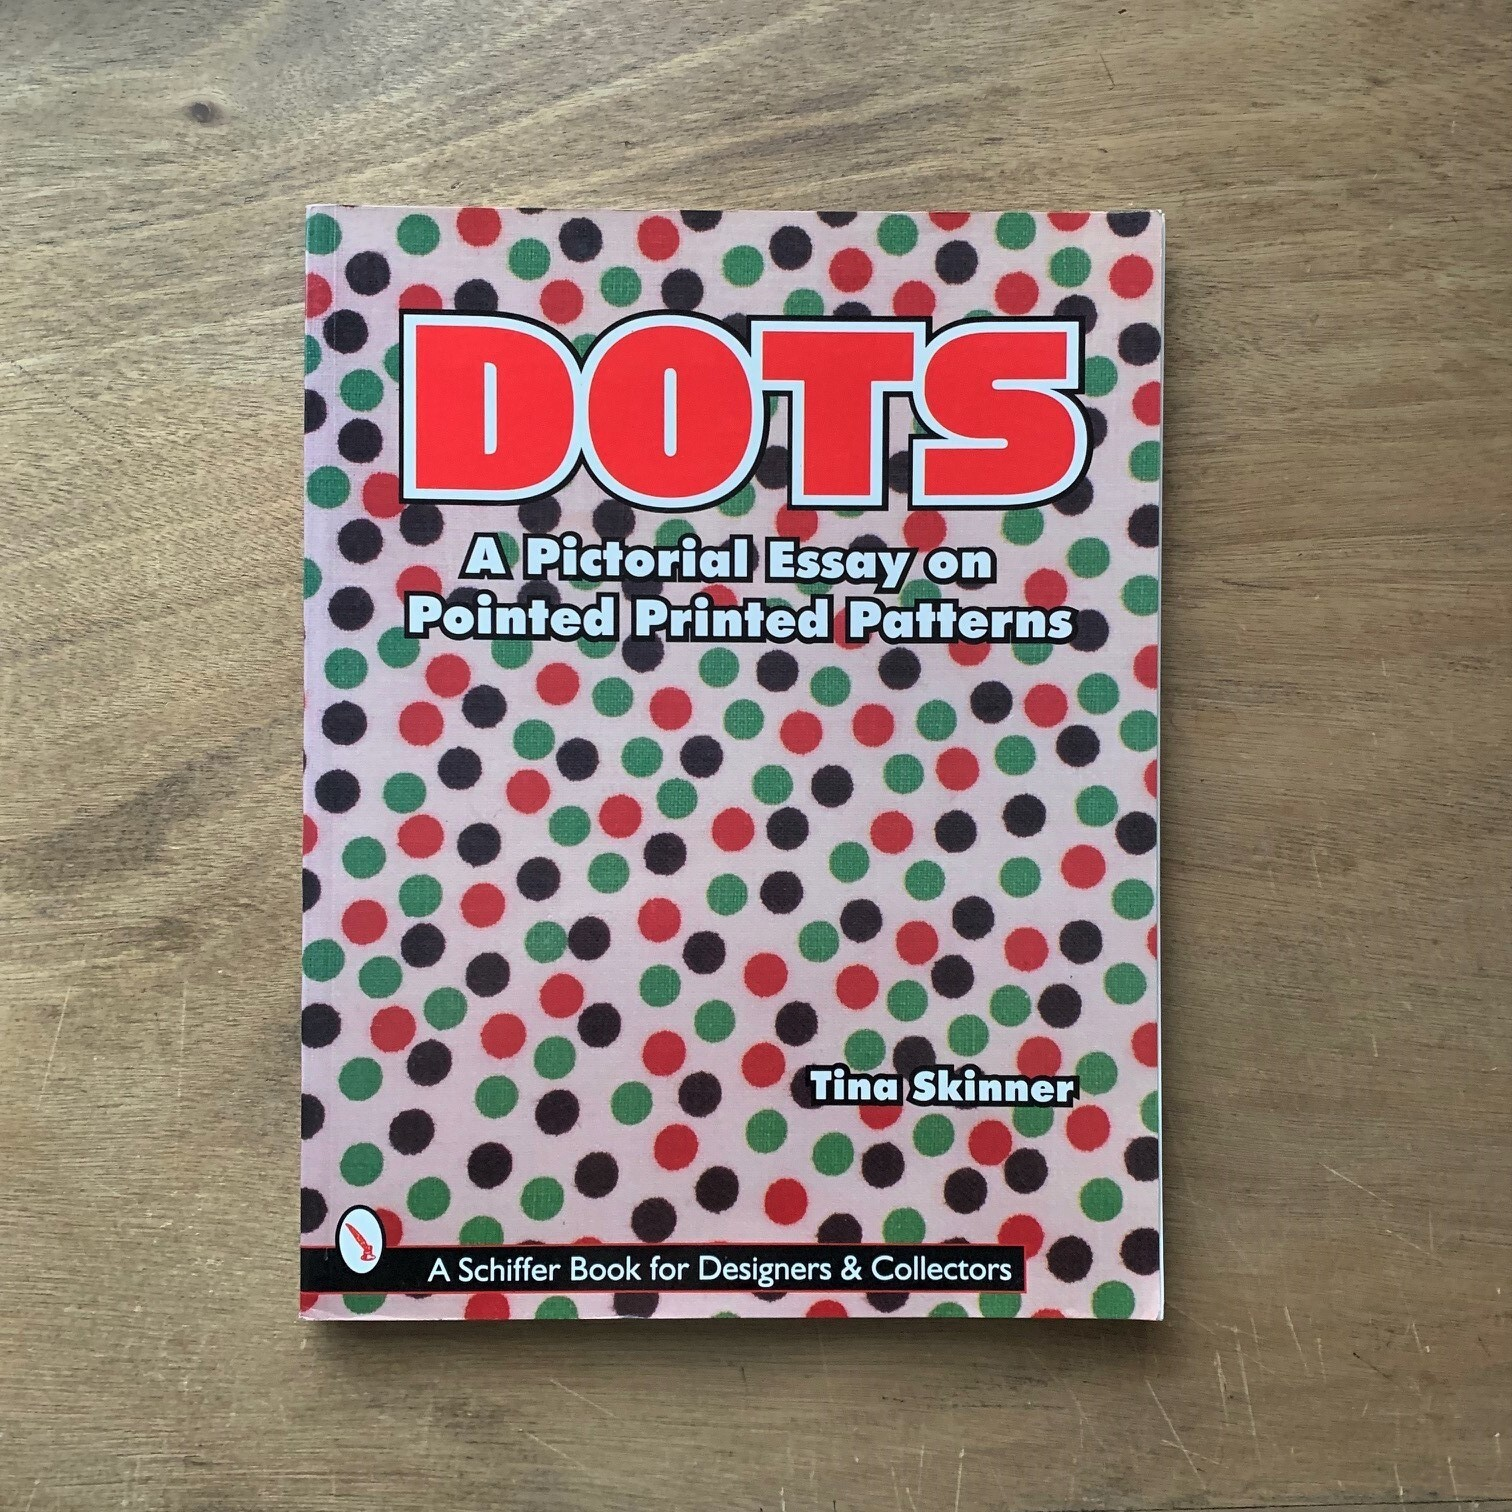 Dots: A Pictorial Essay on Pointed, Printed Patterns ドット